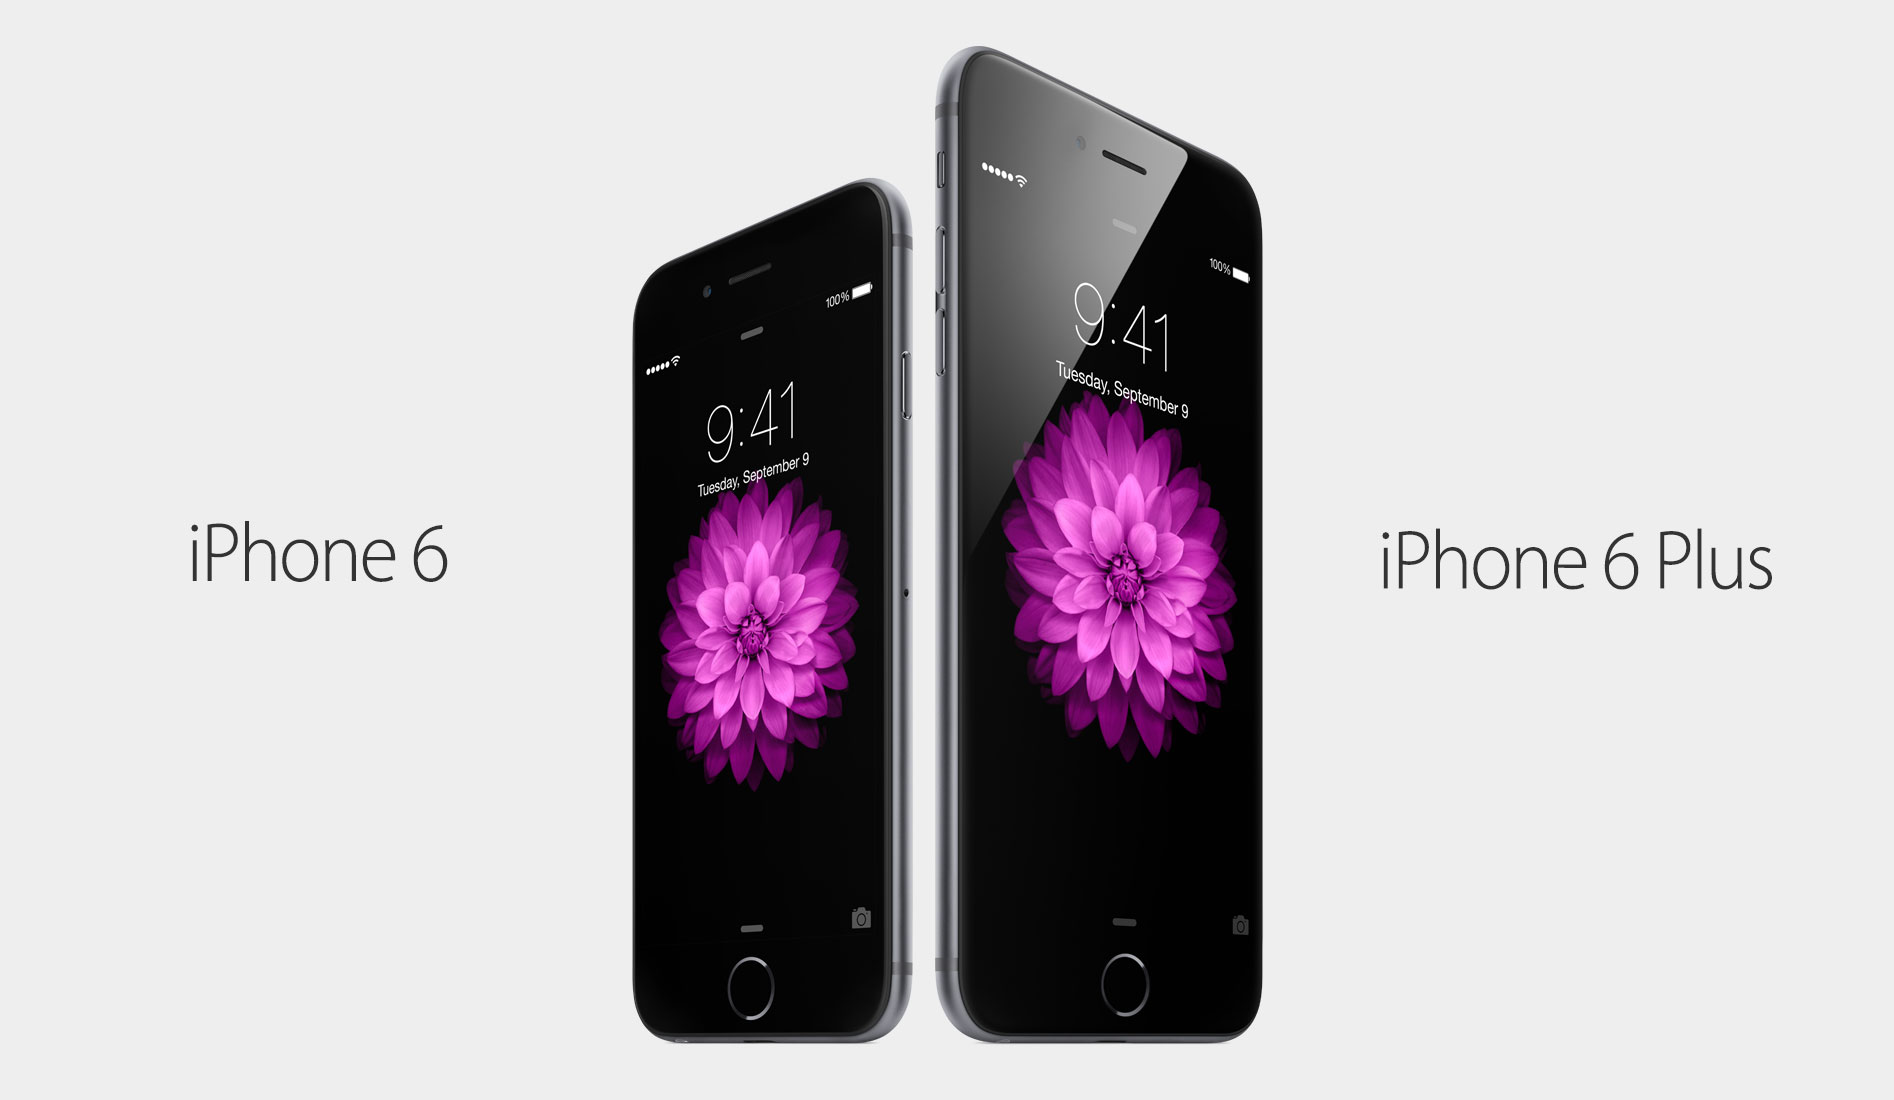 gambar beza iphone 6 dan iphone 6 plus